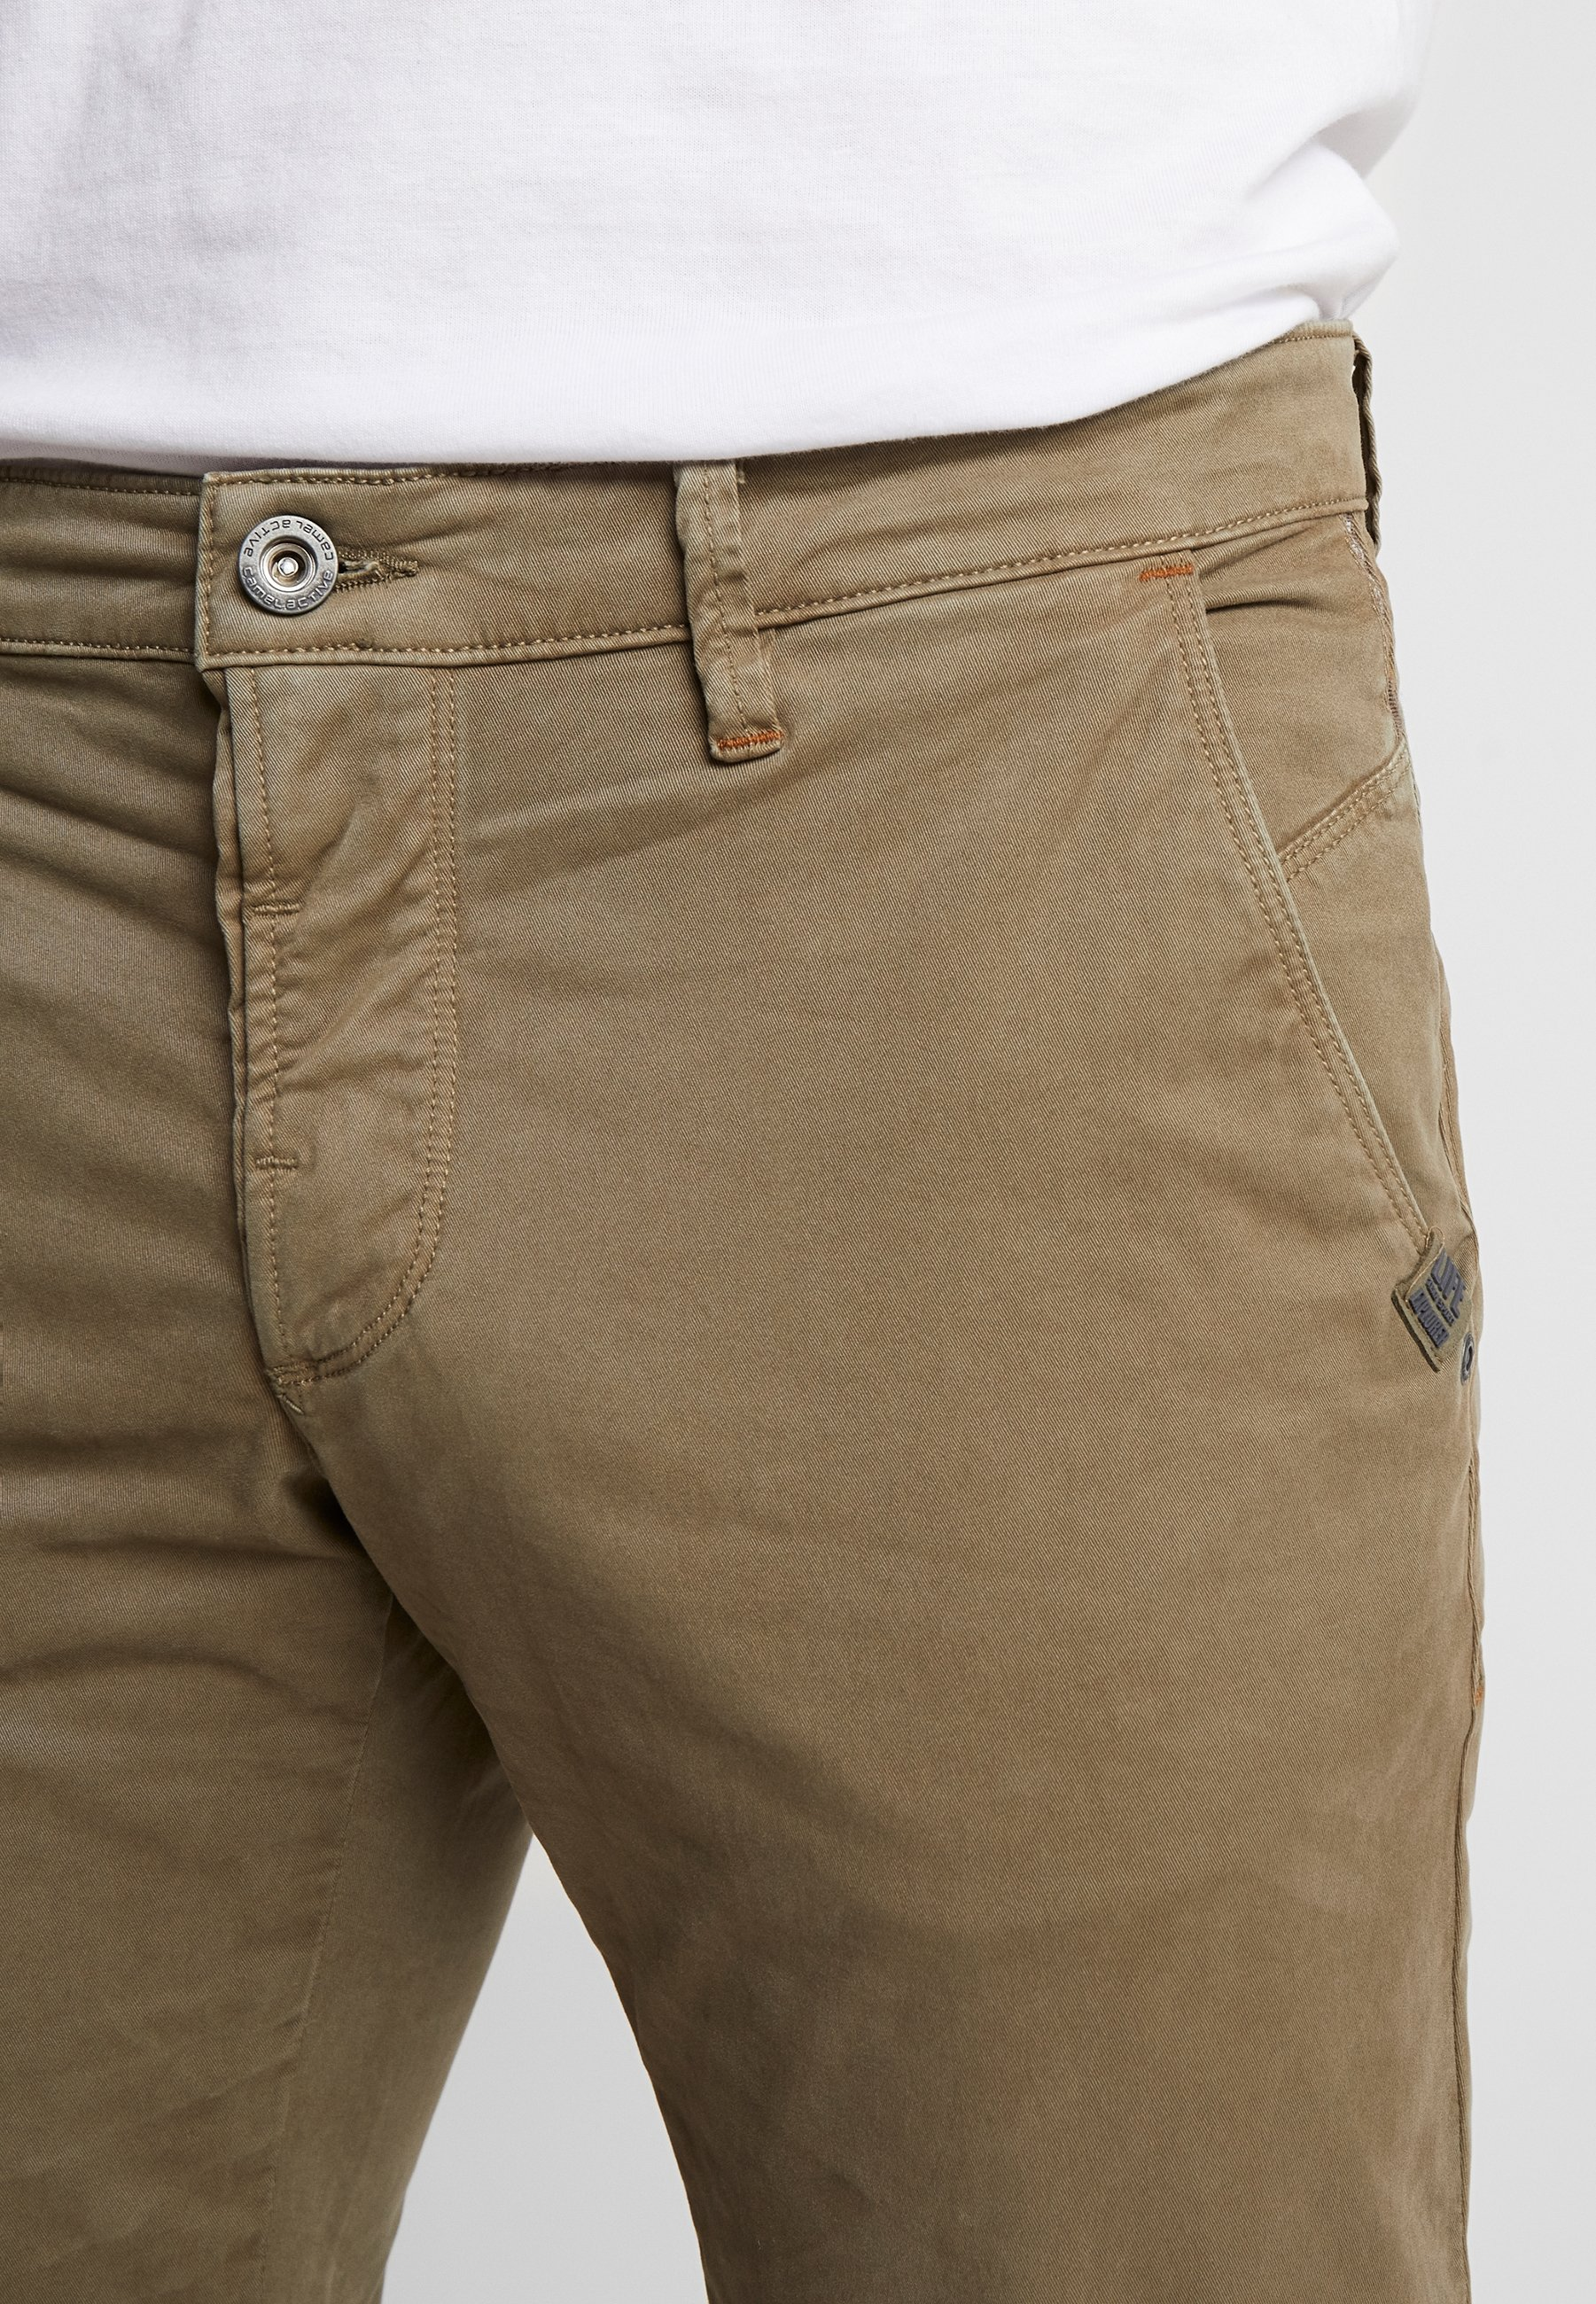 camel active Chinos - light khaki